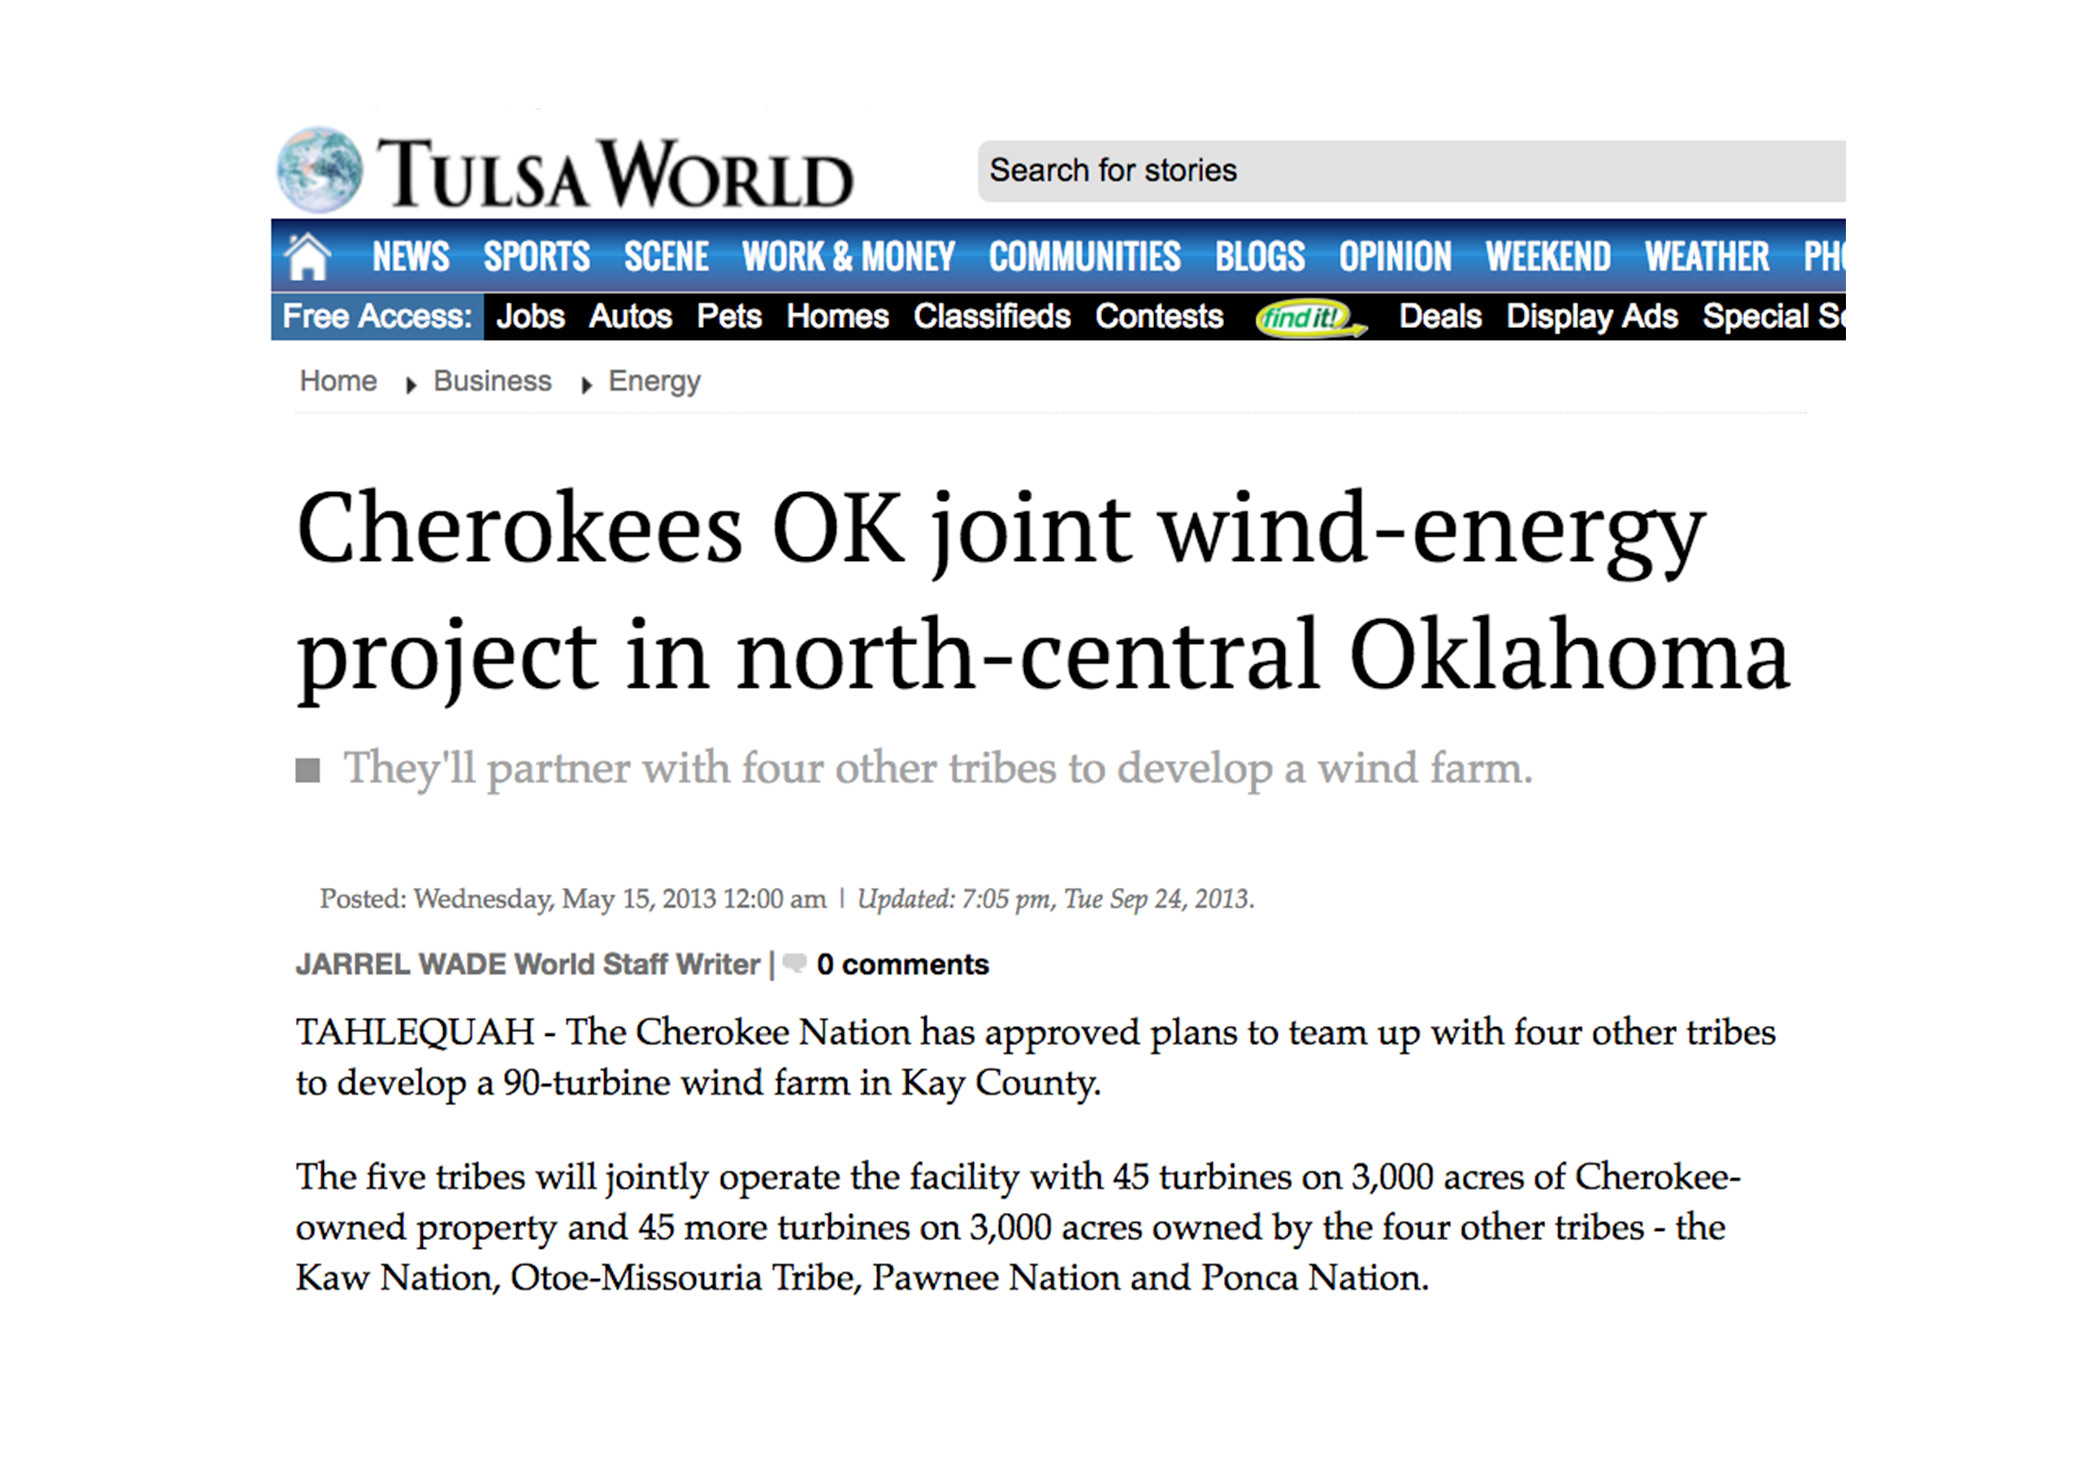 Cherokees OK joint wind-energy project in north-central Oklahoma